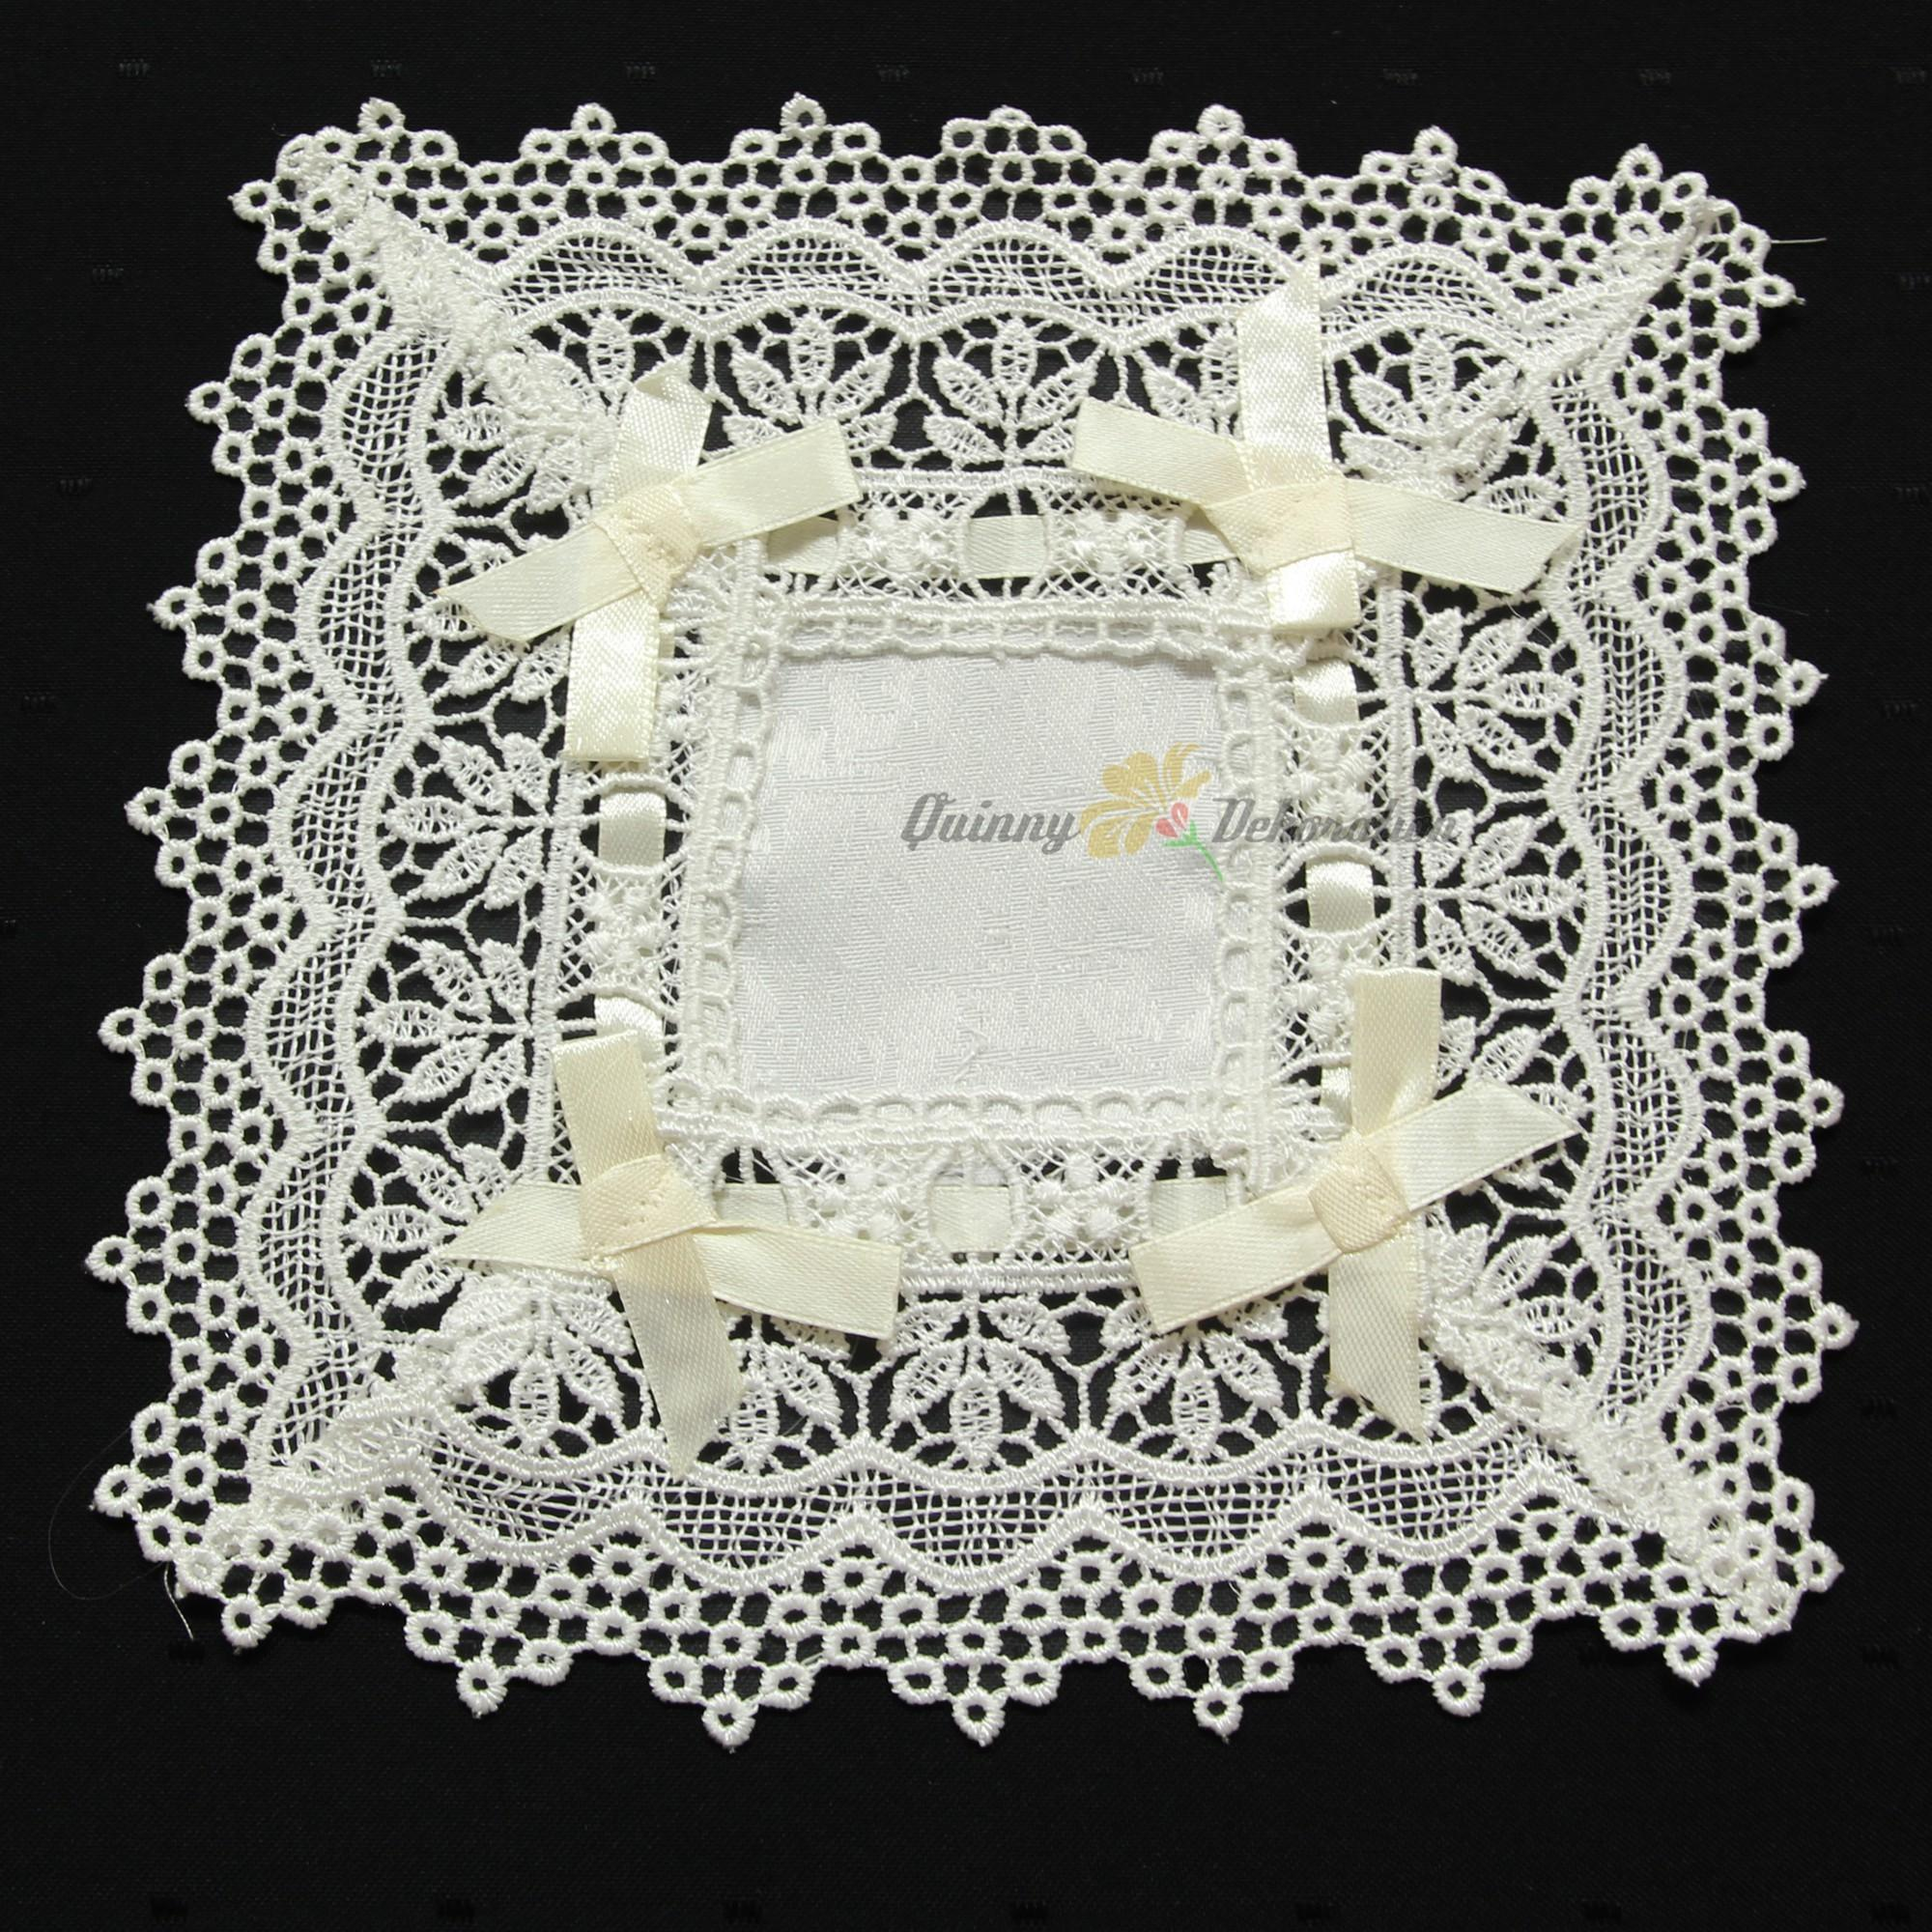 Unique Jacquard Lace Bow Doily Table Runner